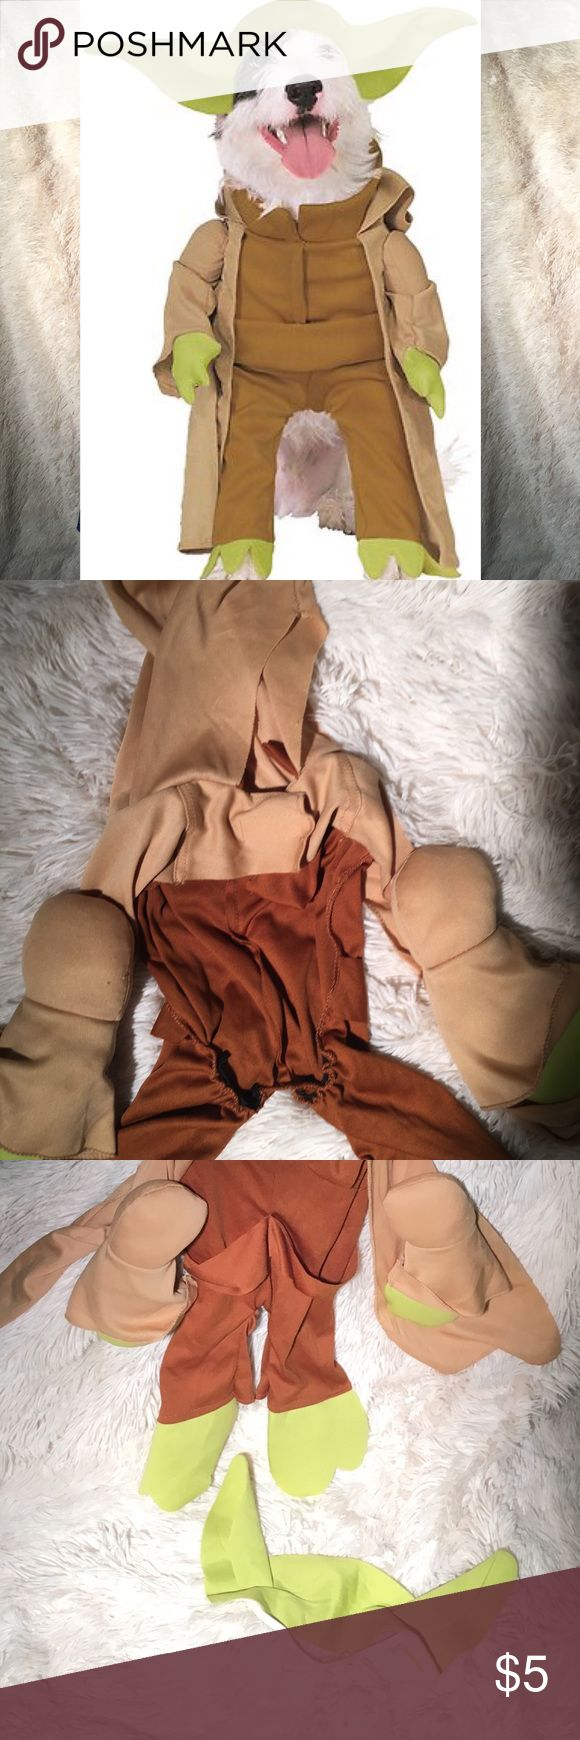 Adorable Yoda Dog Costume My dog hated it. So she never wore. Purchased when she was still a puppy so now neither of our dogs fit this. Would fit a dog ranging from 30 lbs-40 lbs Accessories